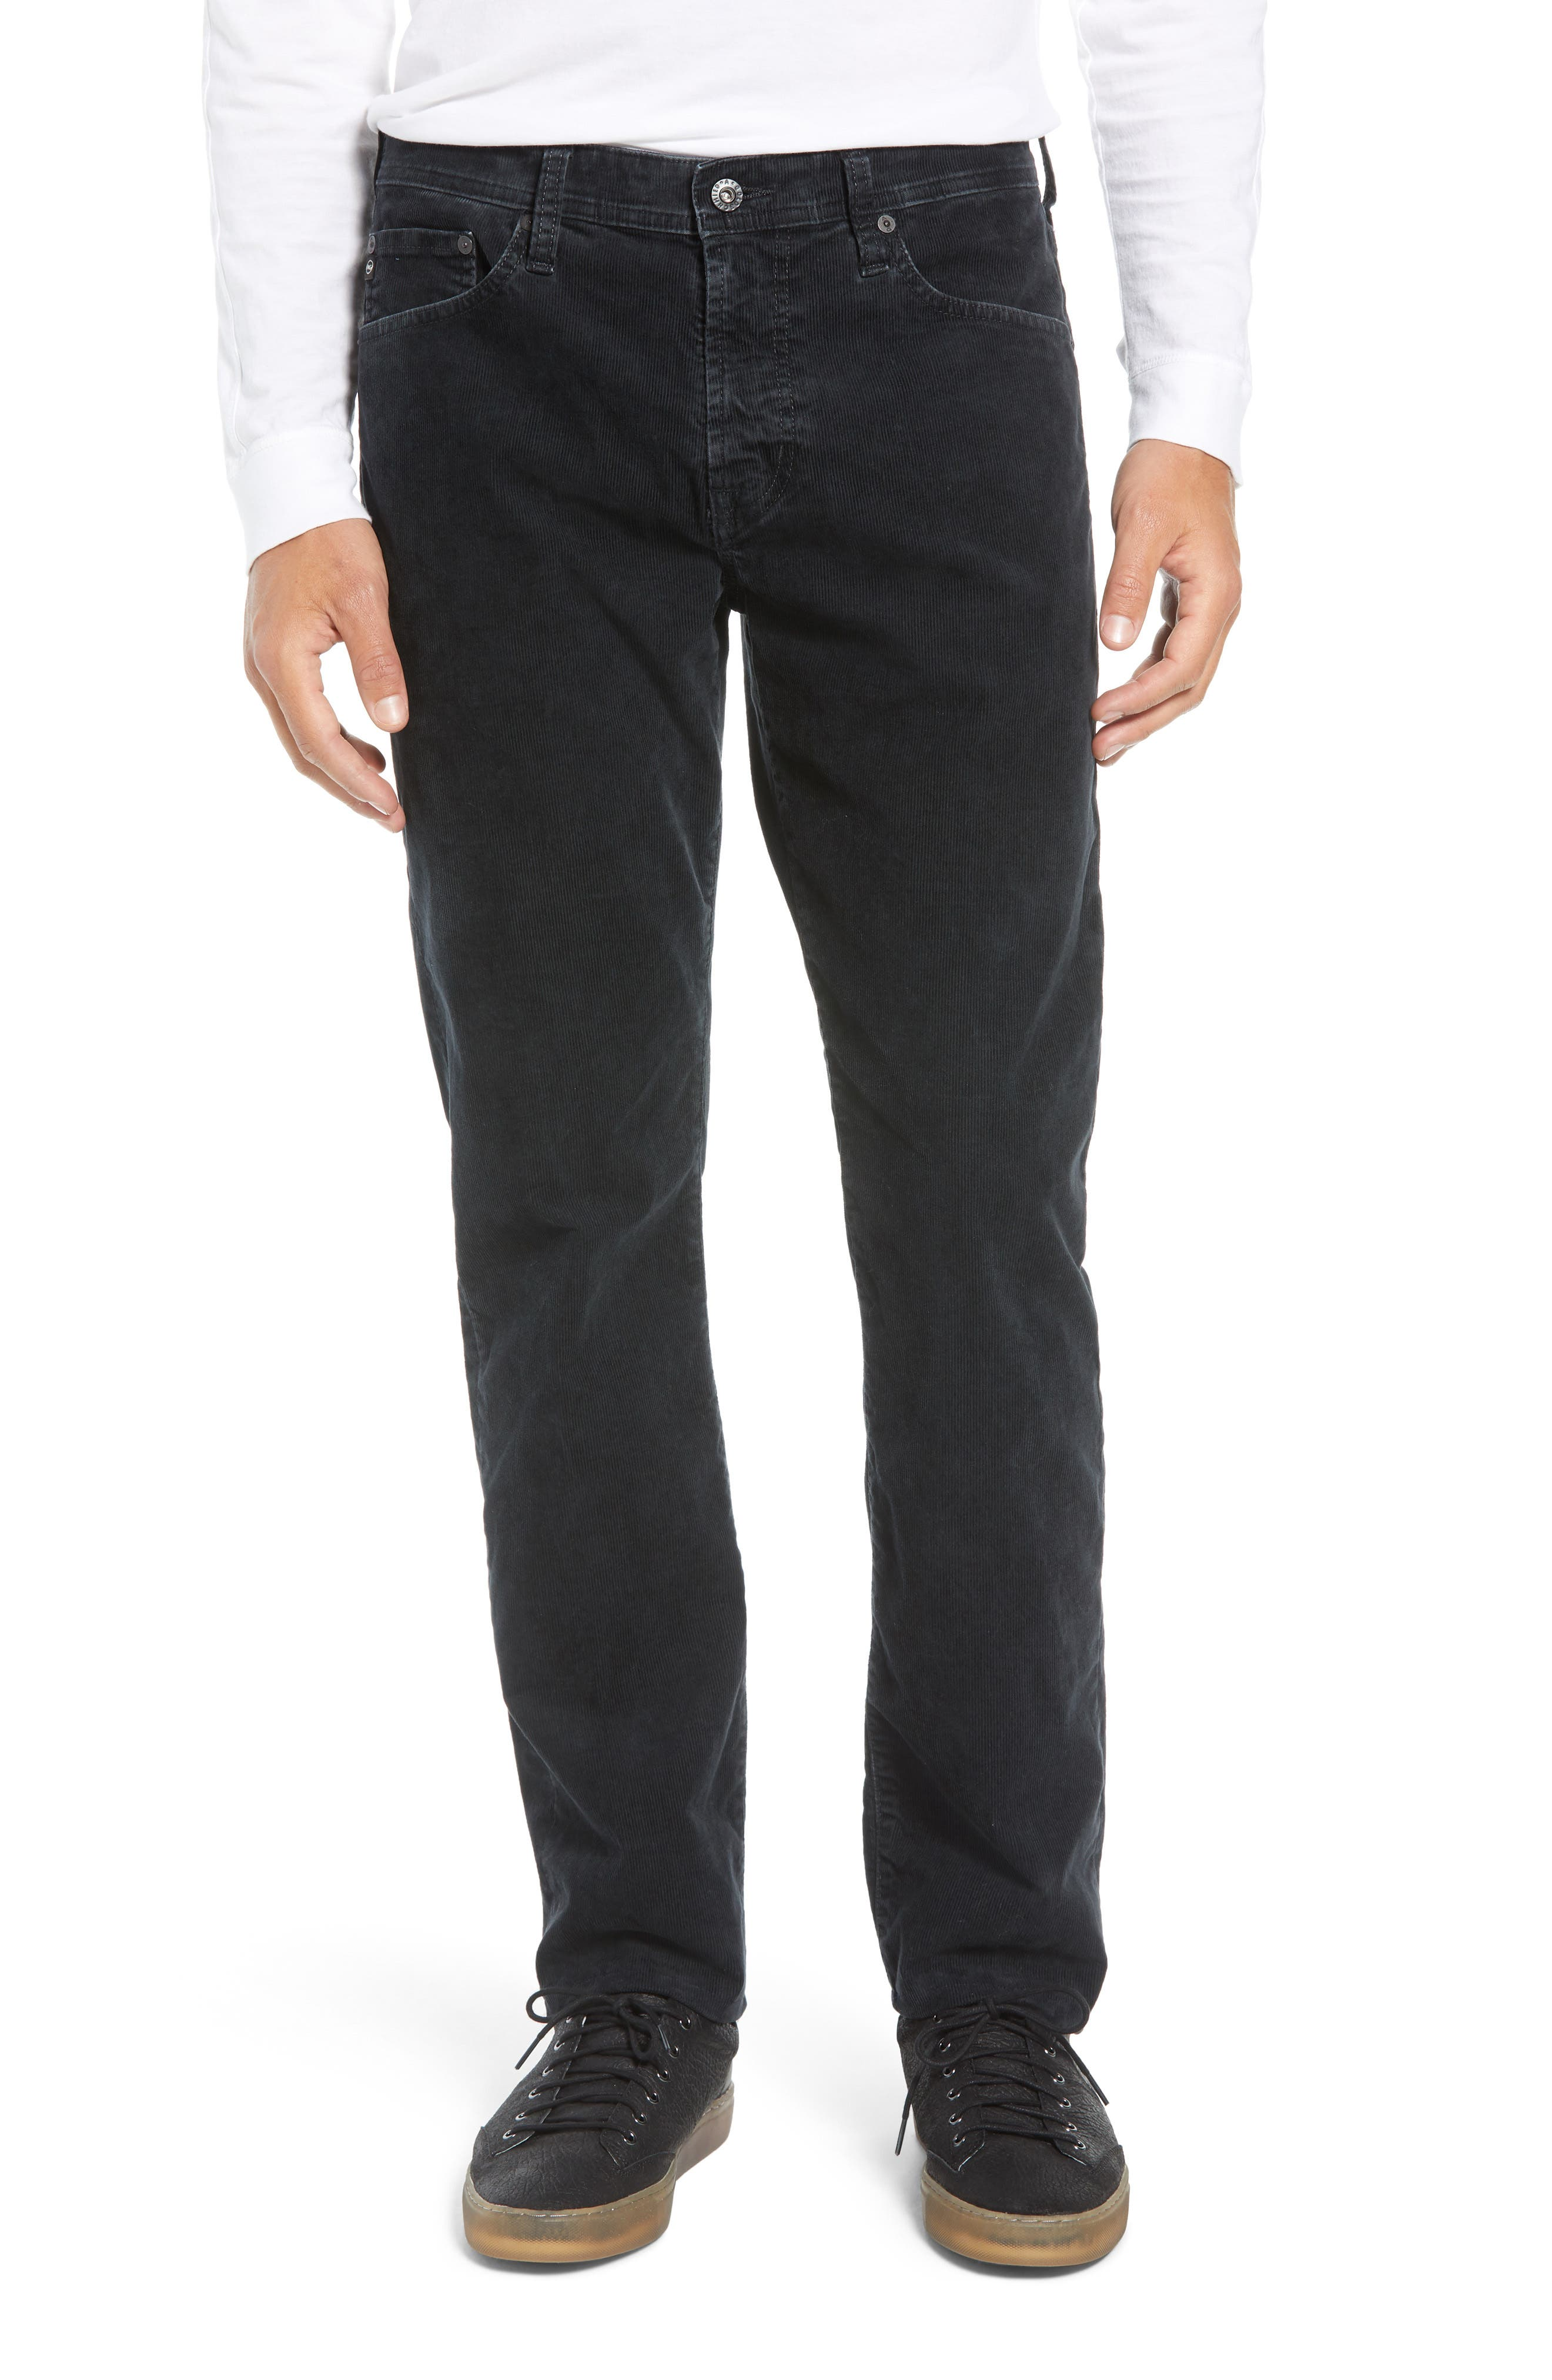 Everett Straight Leg Corduroy Pants,                         Main,                         color, SULFUR ASH BLACK